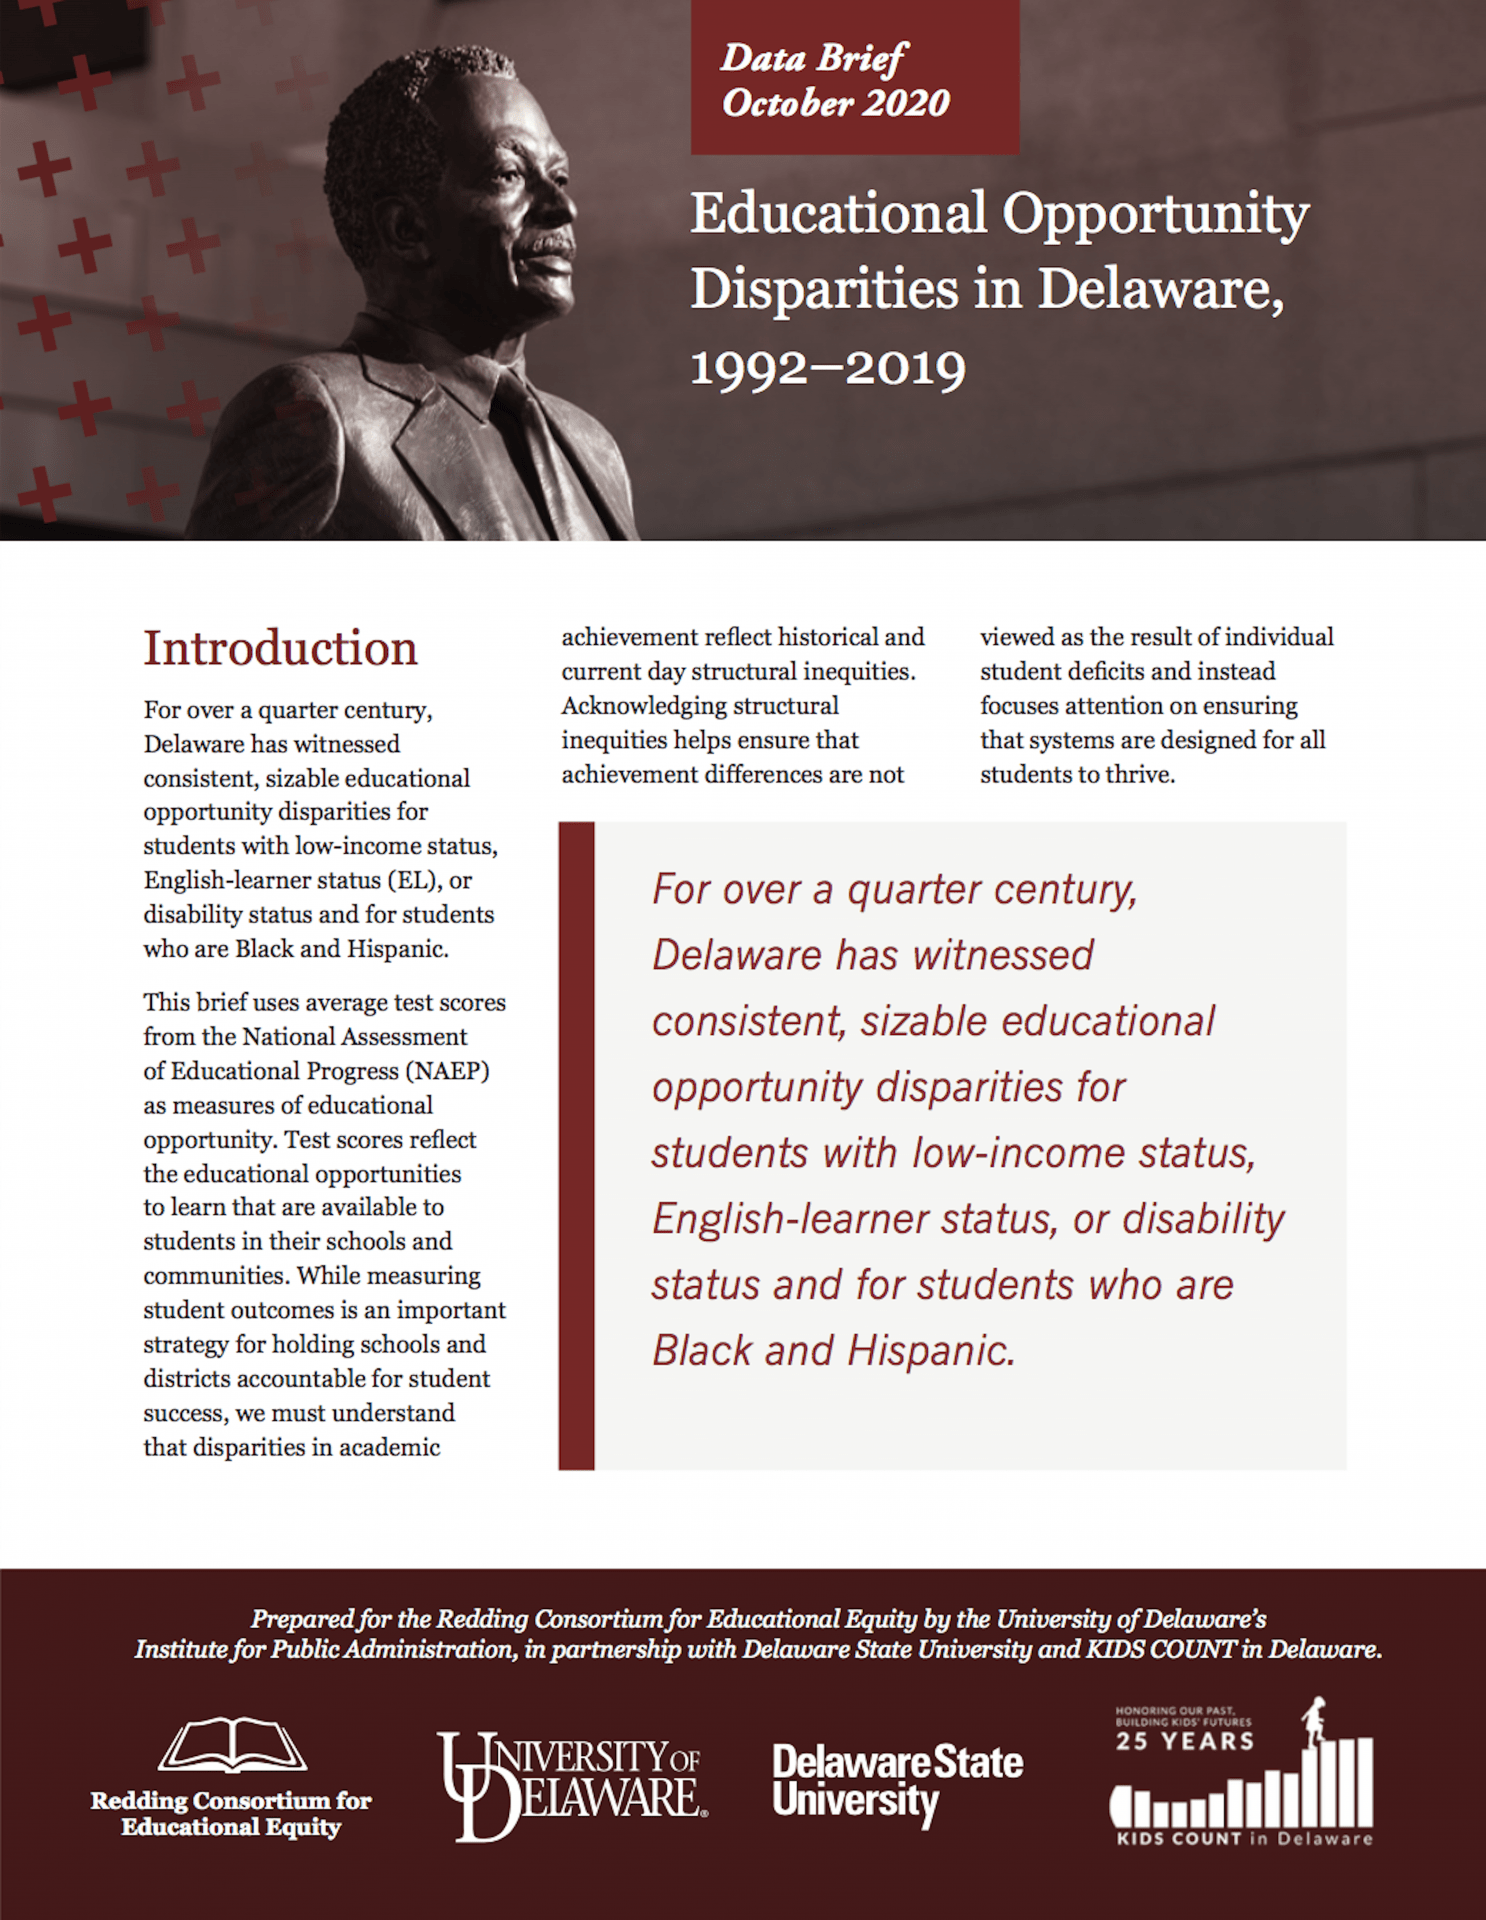 Educational Opportunity Disparities in Delaware, 1992–2019